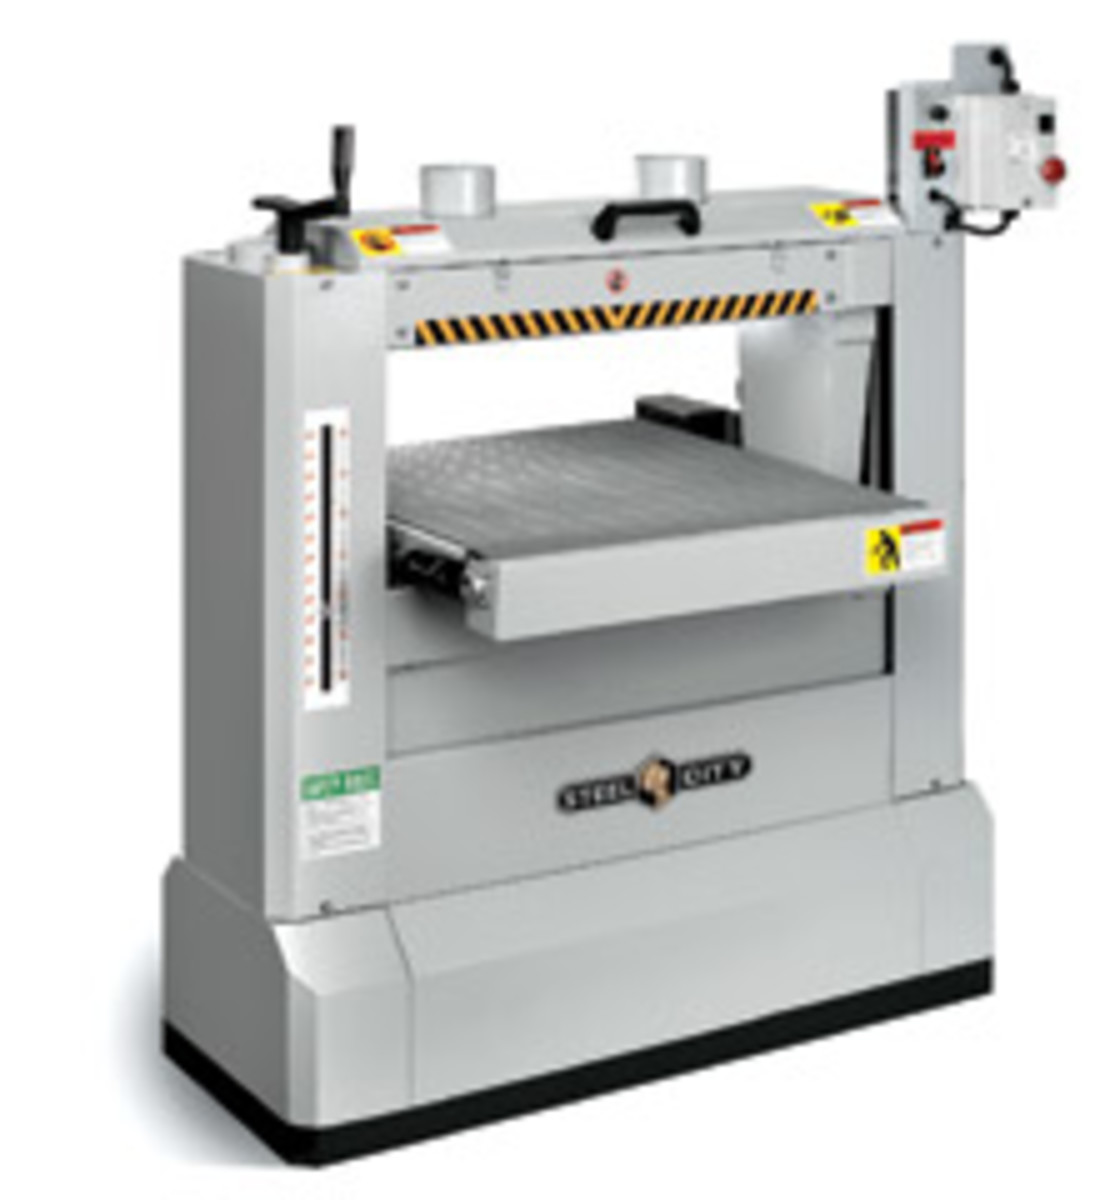 Steel City's model 55220-26 dual drum sander.